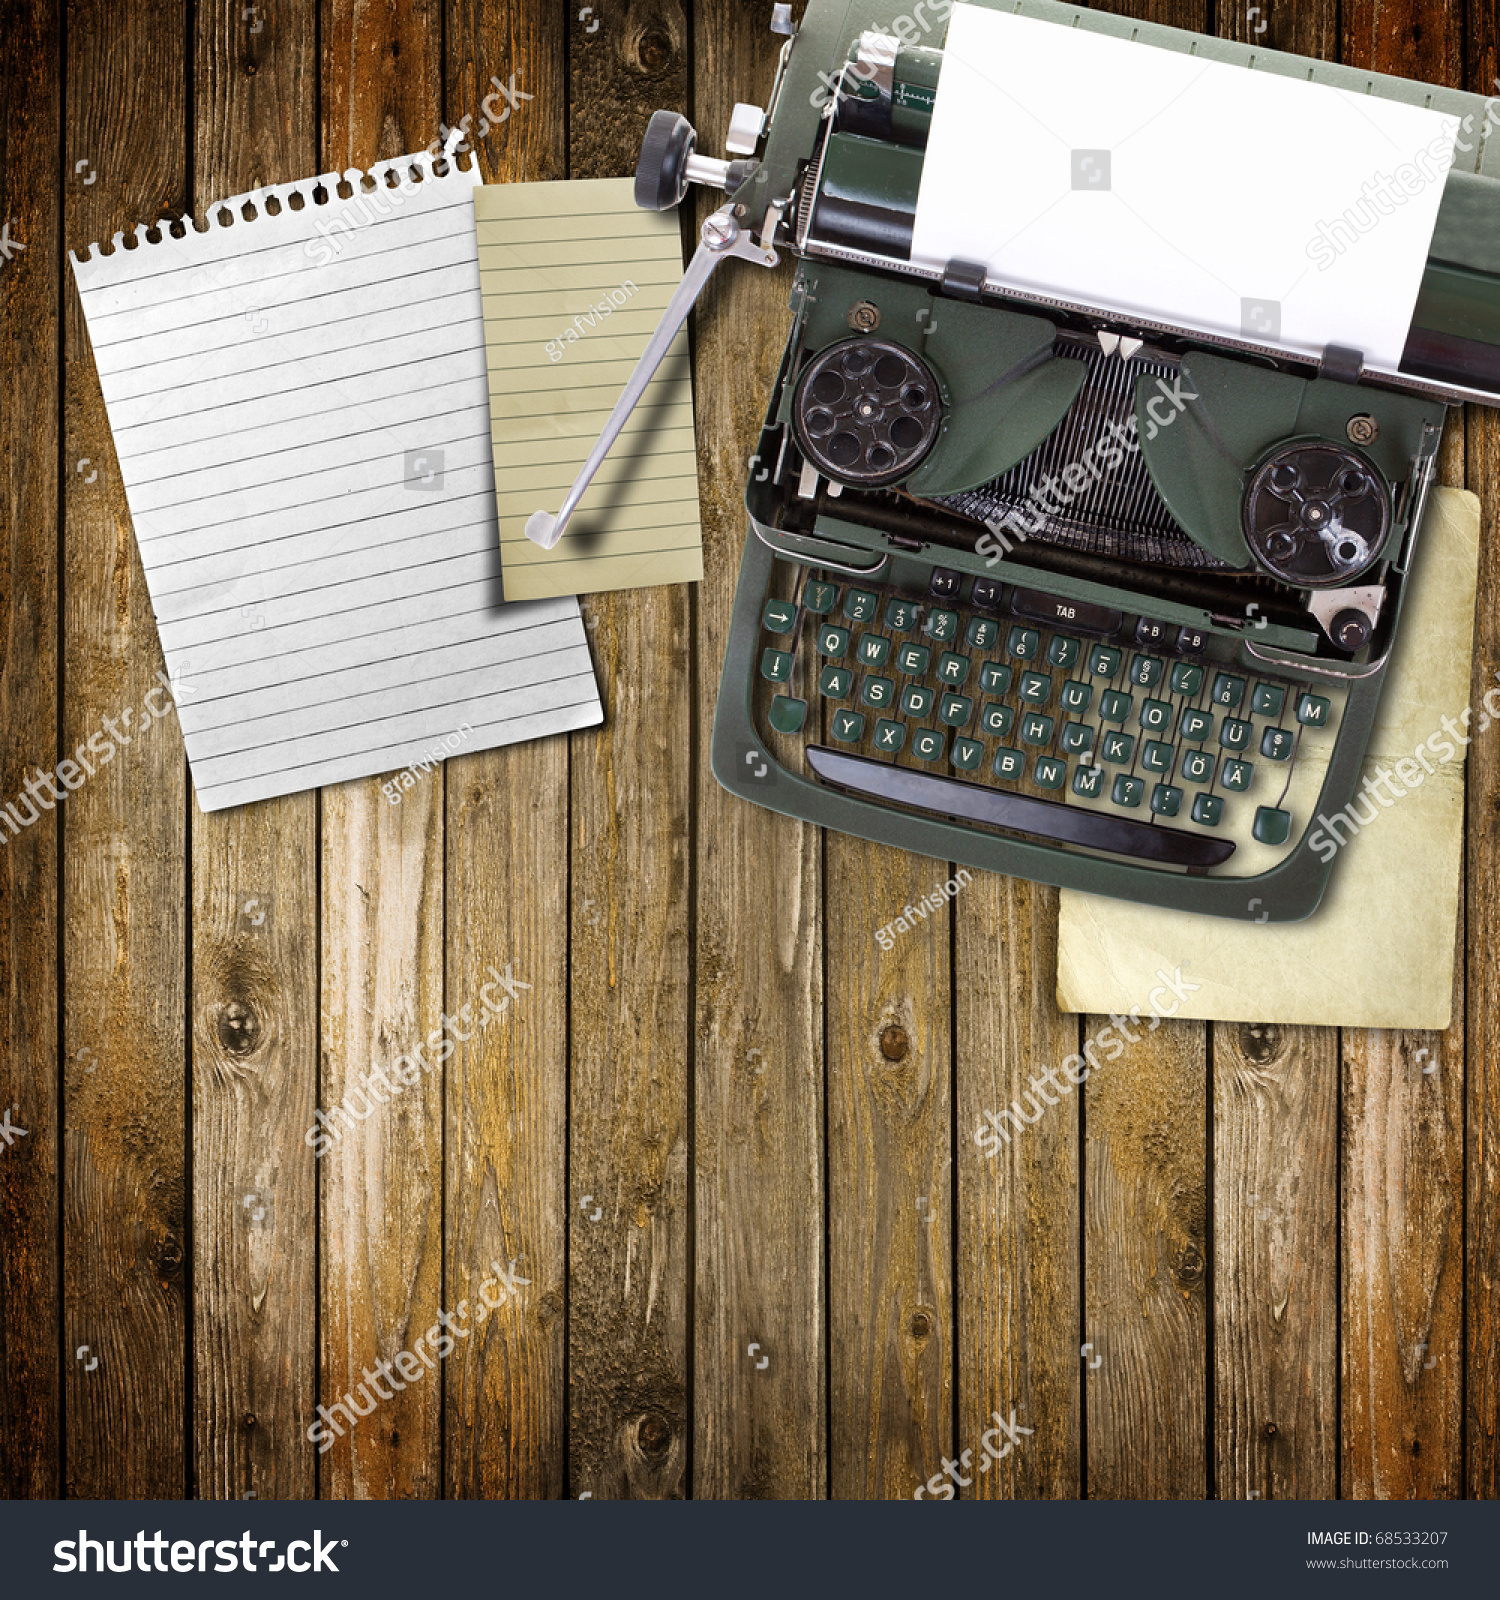 typewriter paper background Download this typewriter and a red paper on wooden background retro photo now and search more of istock's library of royalty-free stock images that features antique photos available for quick and easy download.